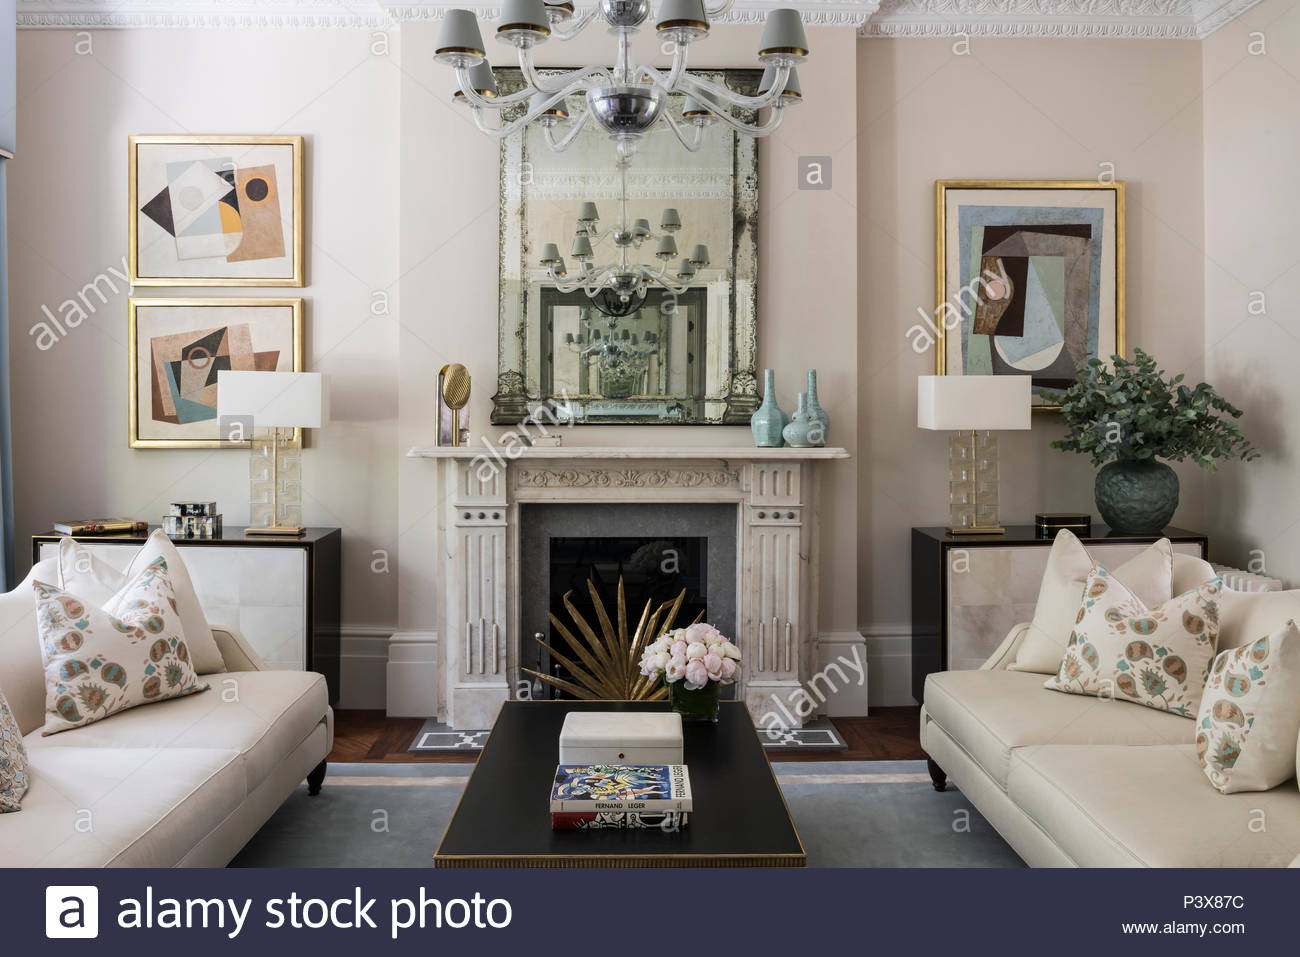 Contemporary artworks by Jeremy Annear add to the symmetry of the sitting room - Stock Image